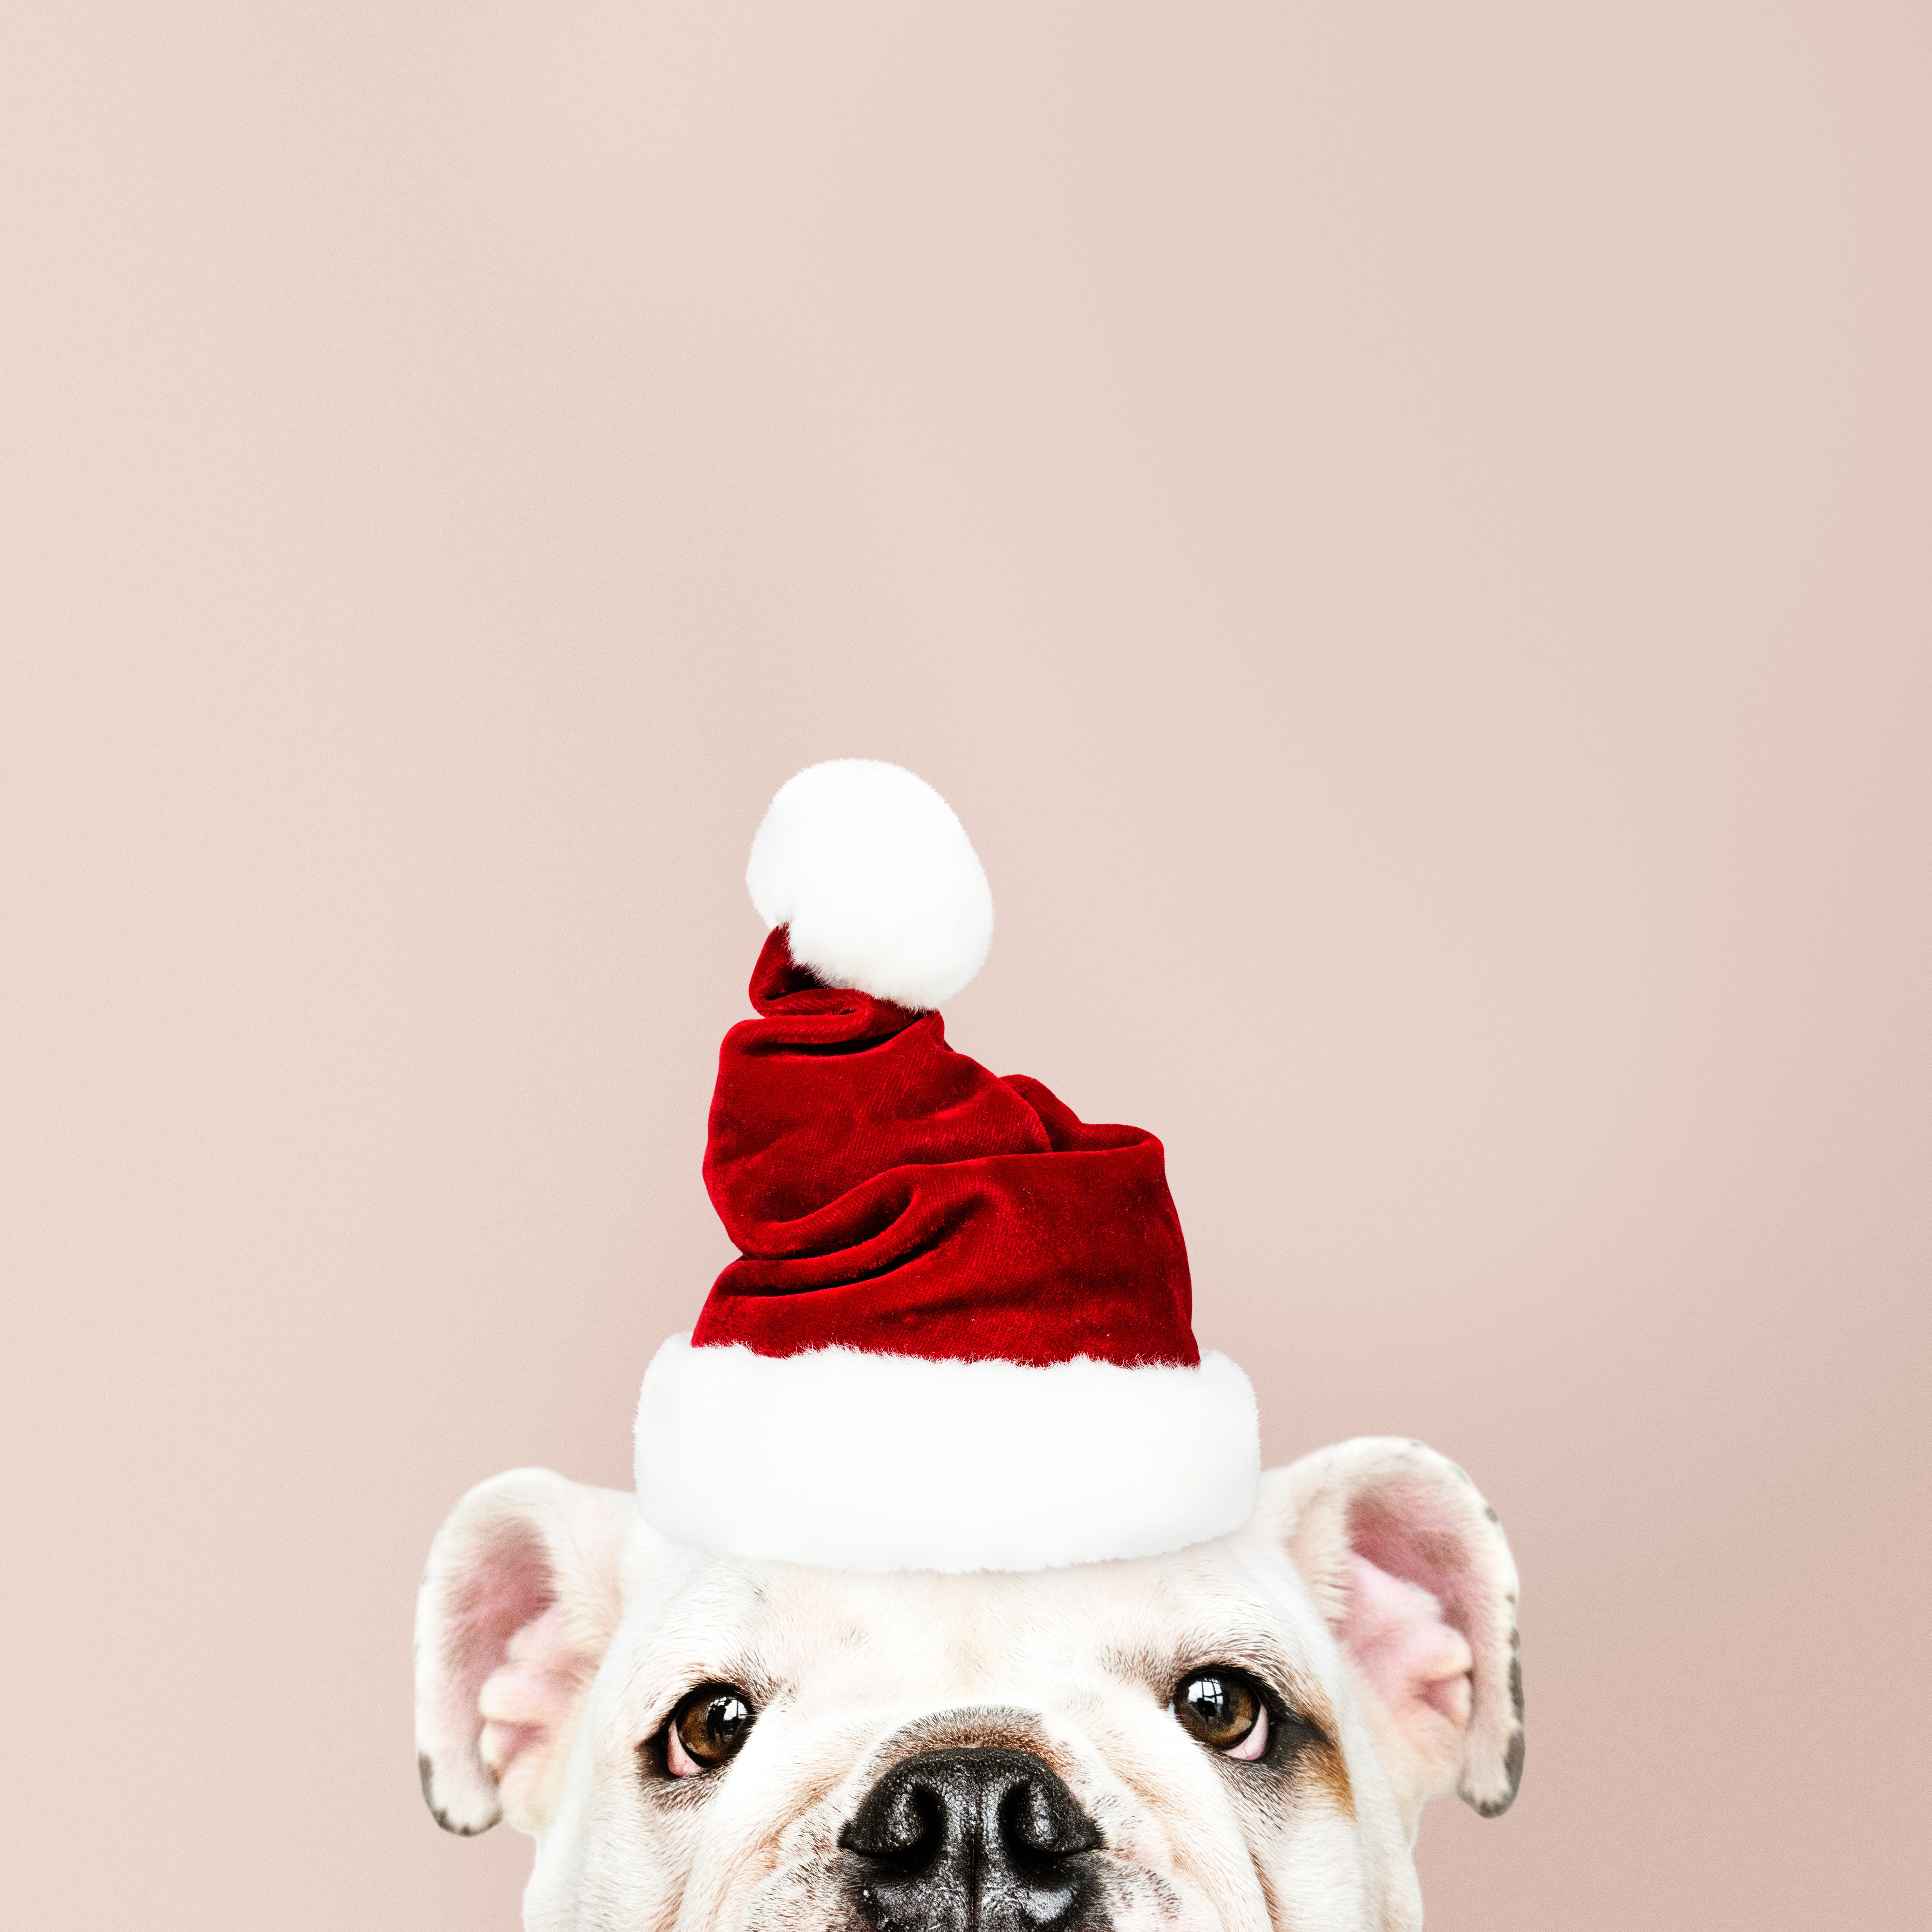 113382 download wallpaper Holidays, Dog, Santa Claus, New Year, Christmas screensavers and pictures for free